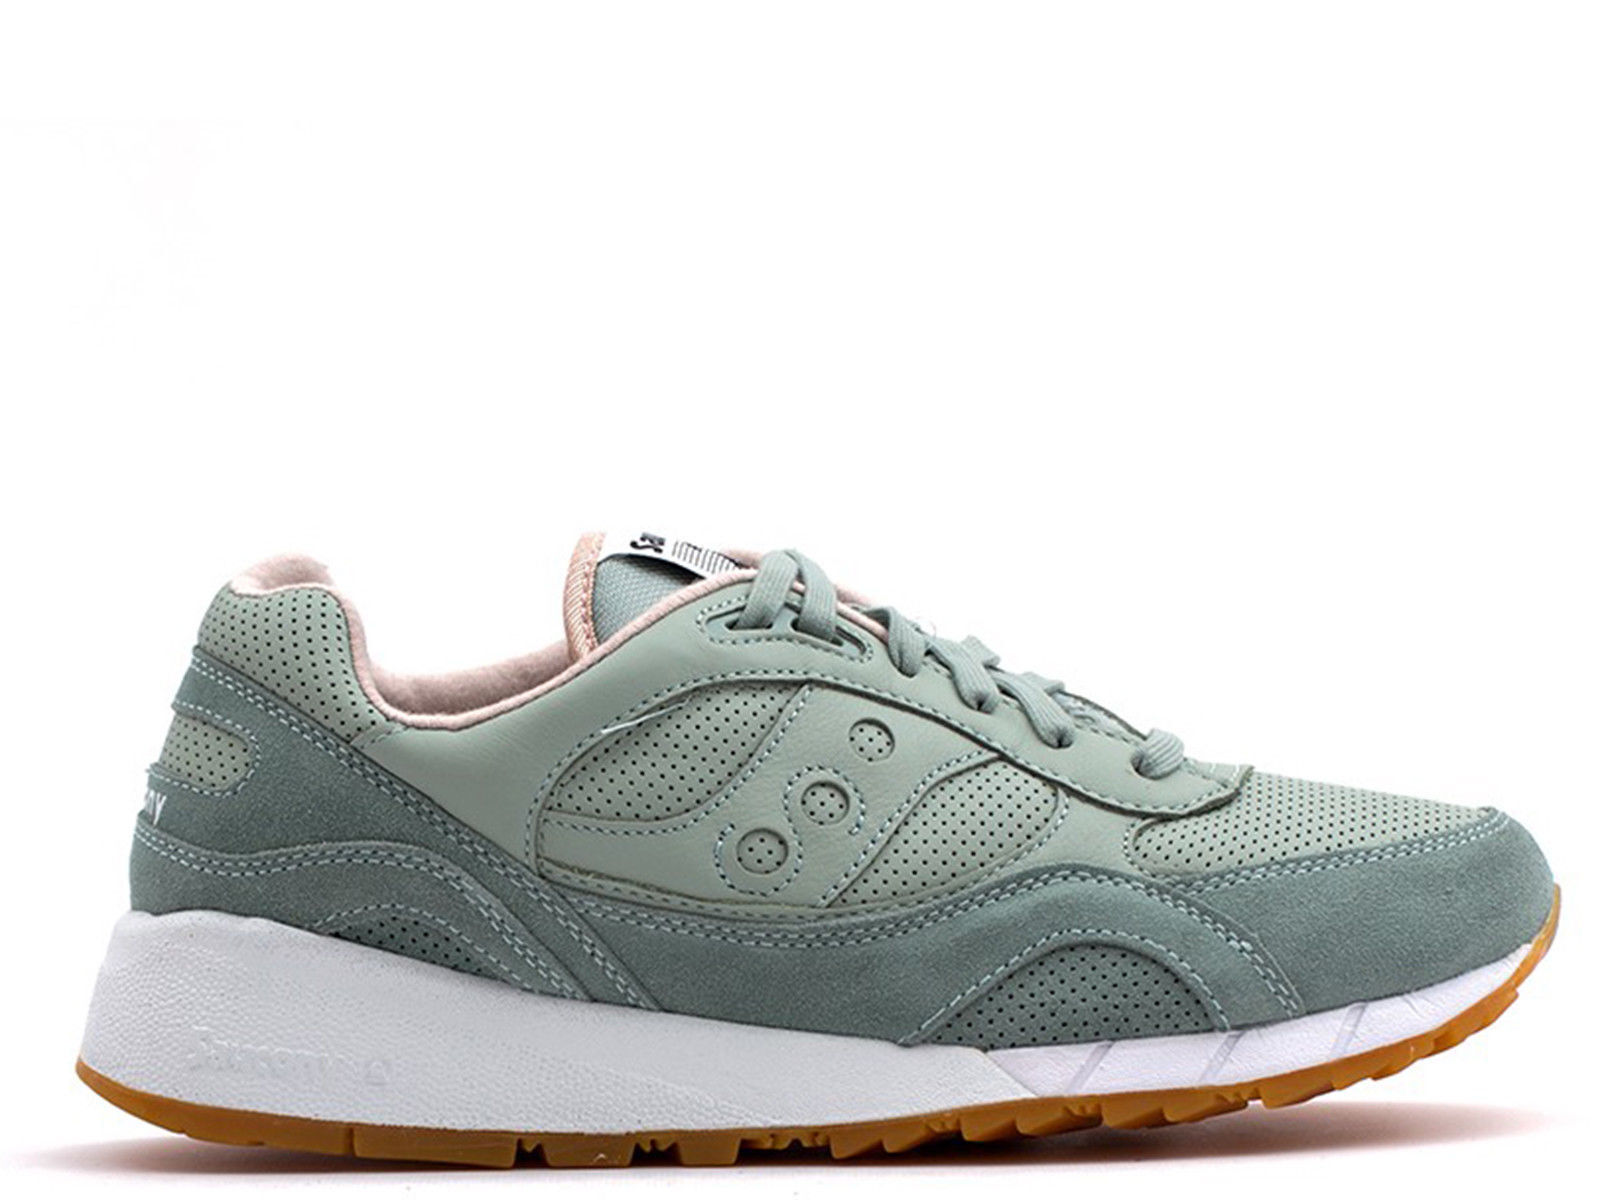 Brand New Saucony Shadow 6000 HT Men's Athletic Fashion Sneakers 8.5 US